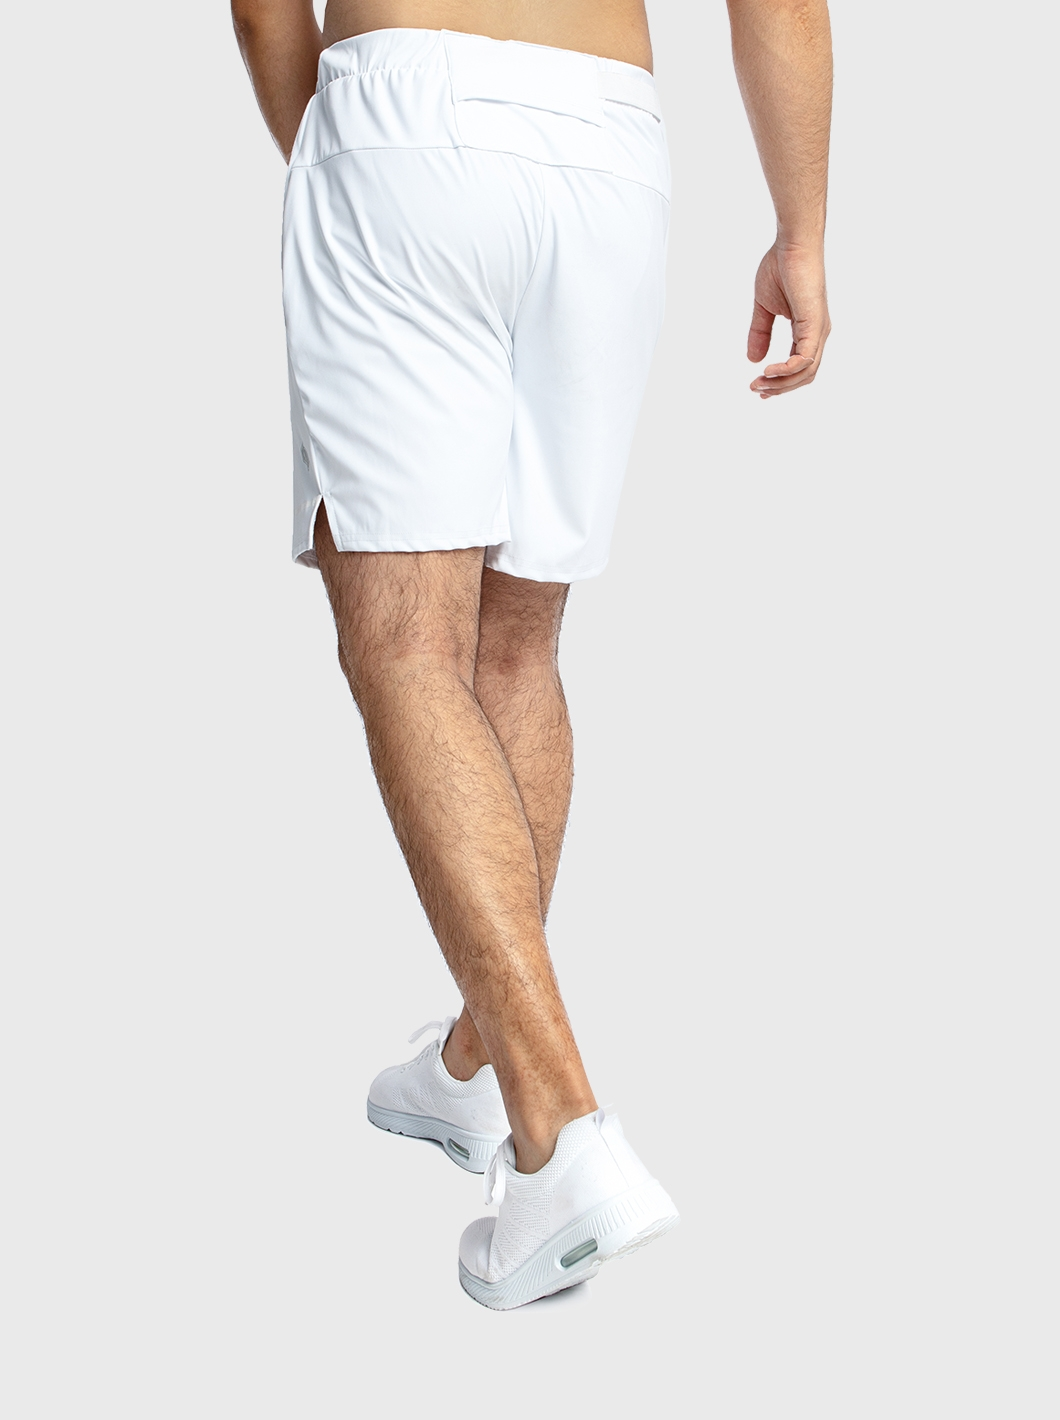 DW High Function Shorts